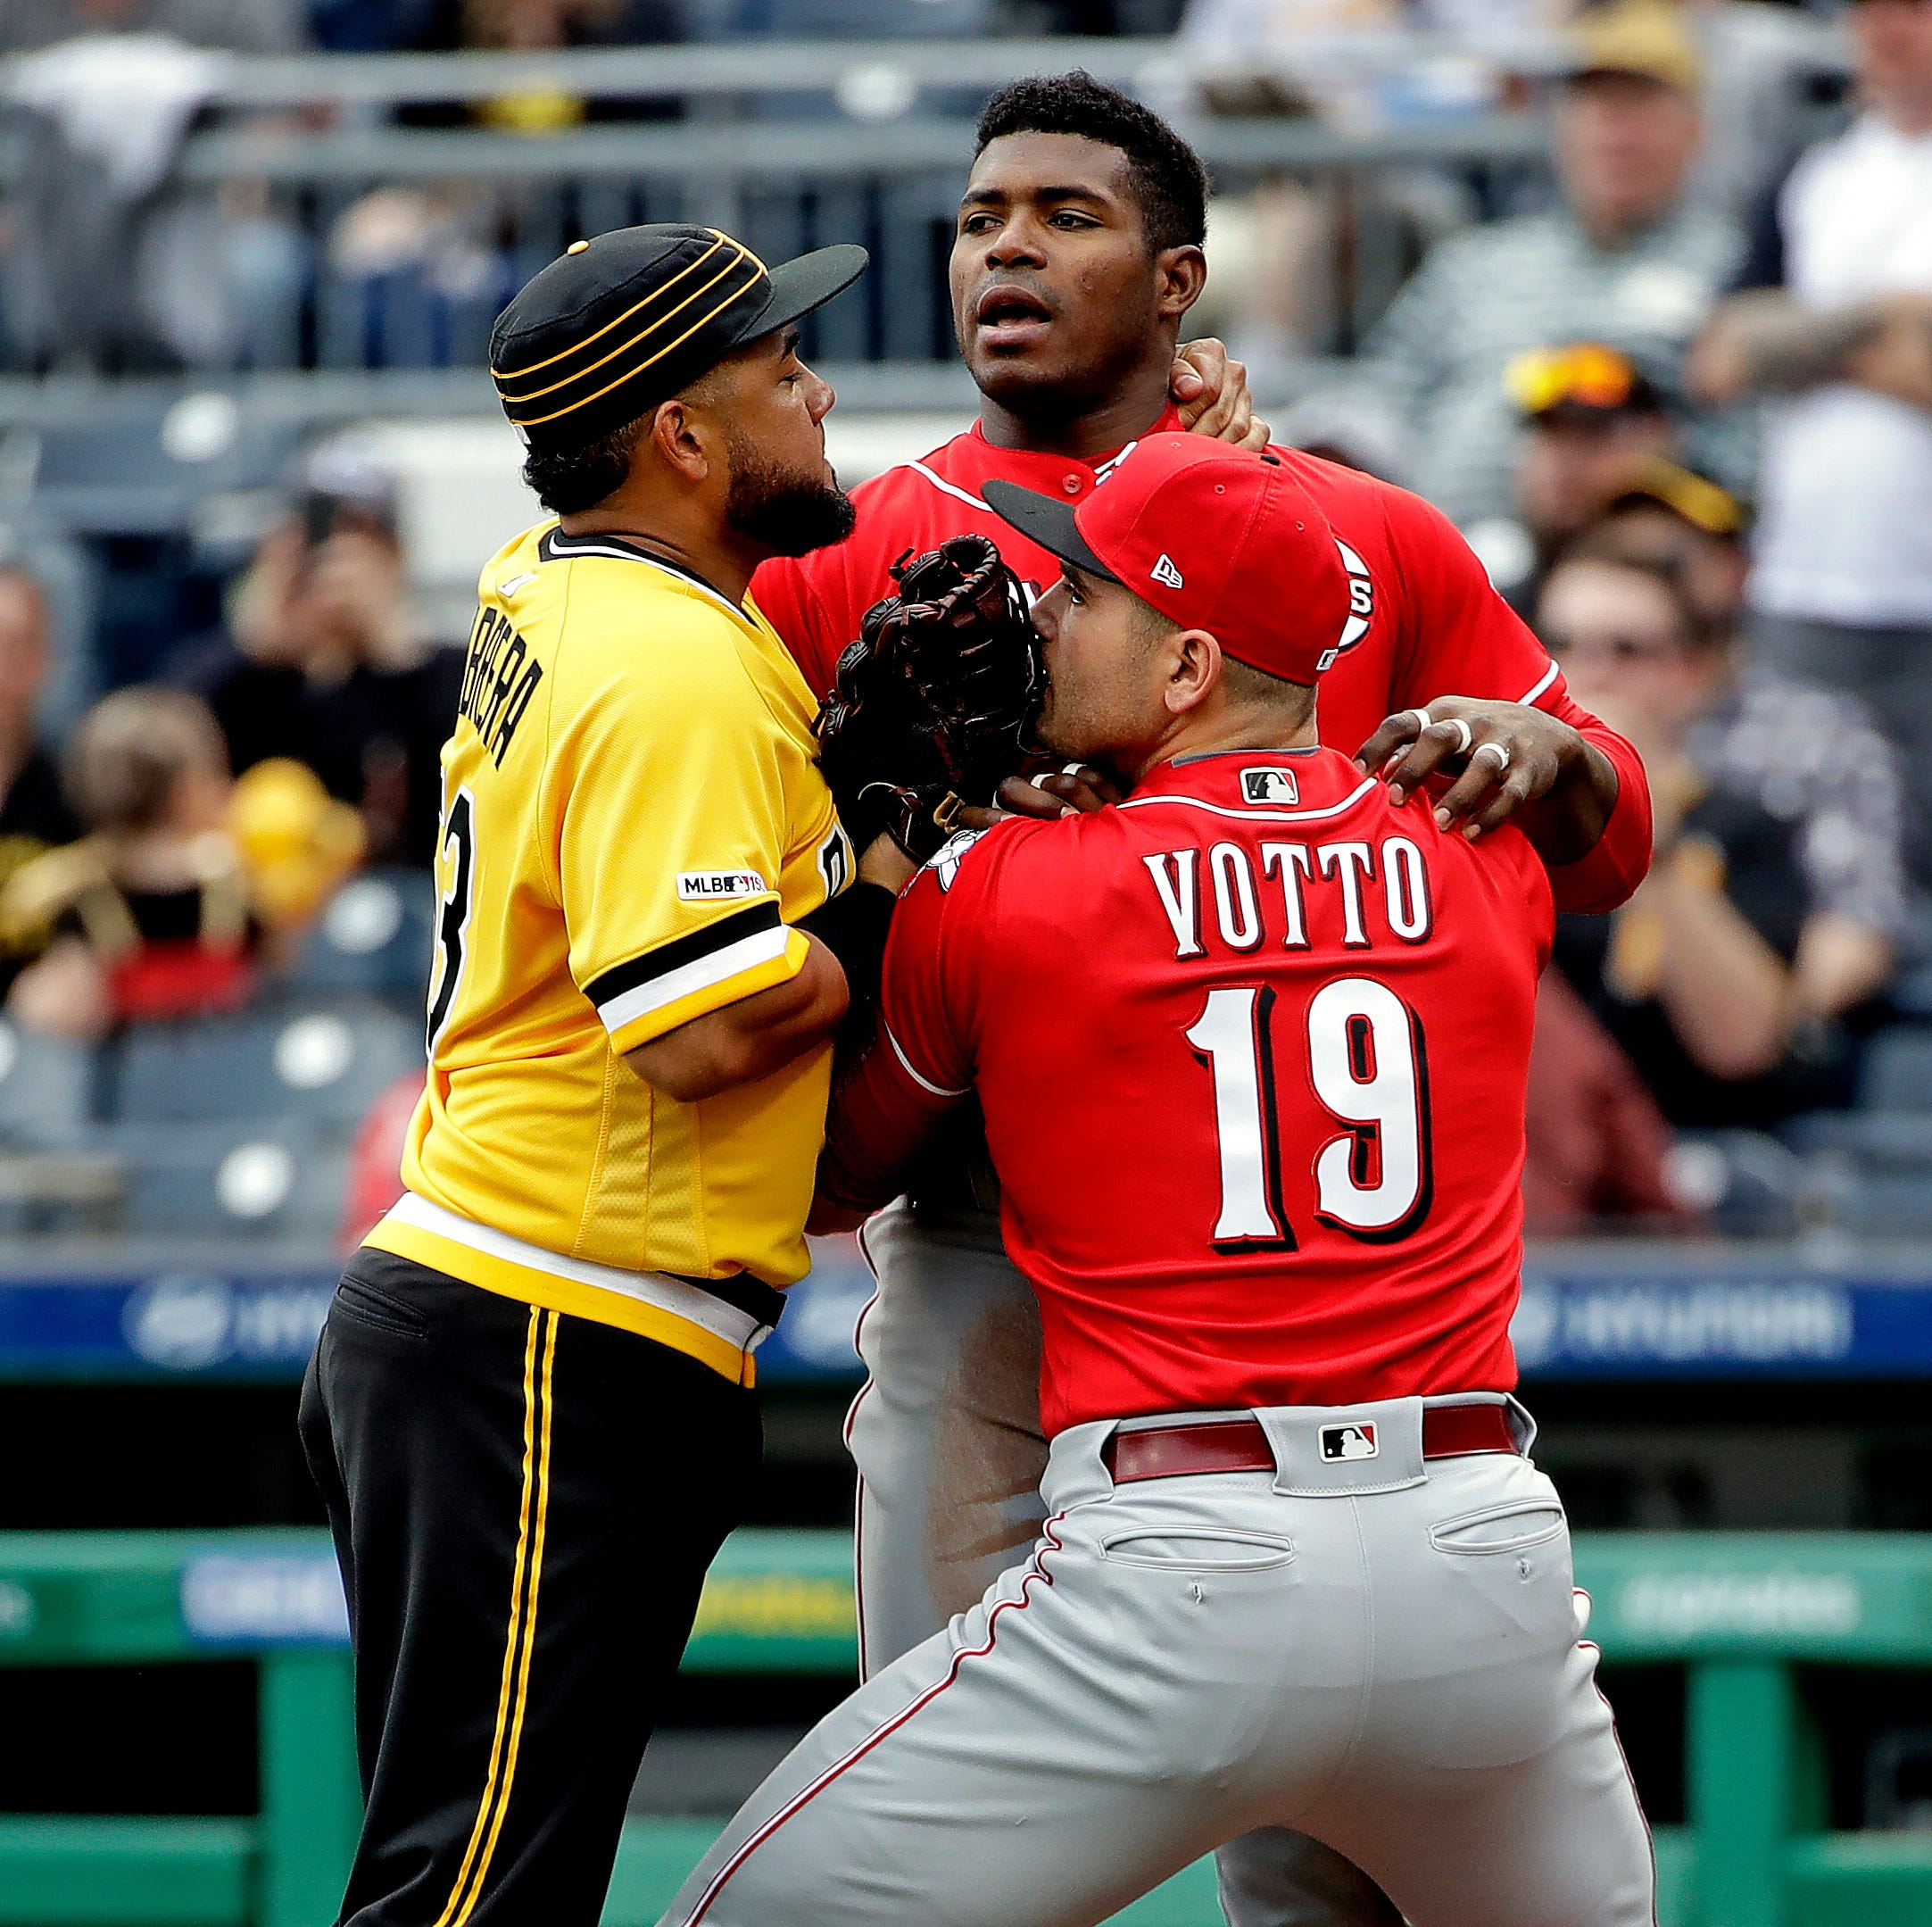 Doc's Morning Line: From the brawl that wasn't to the losing streak, Reds walk a thin line